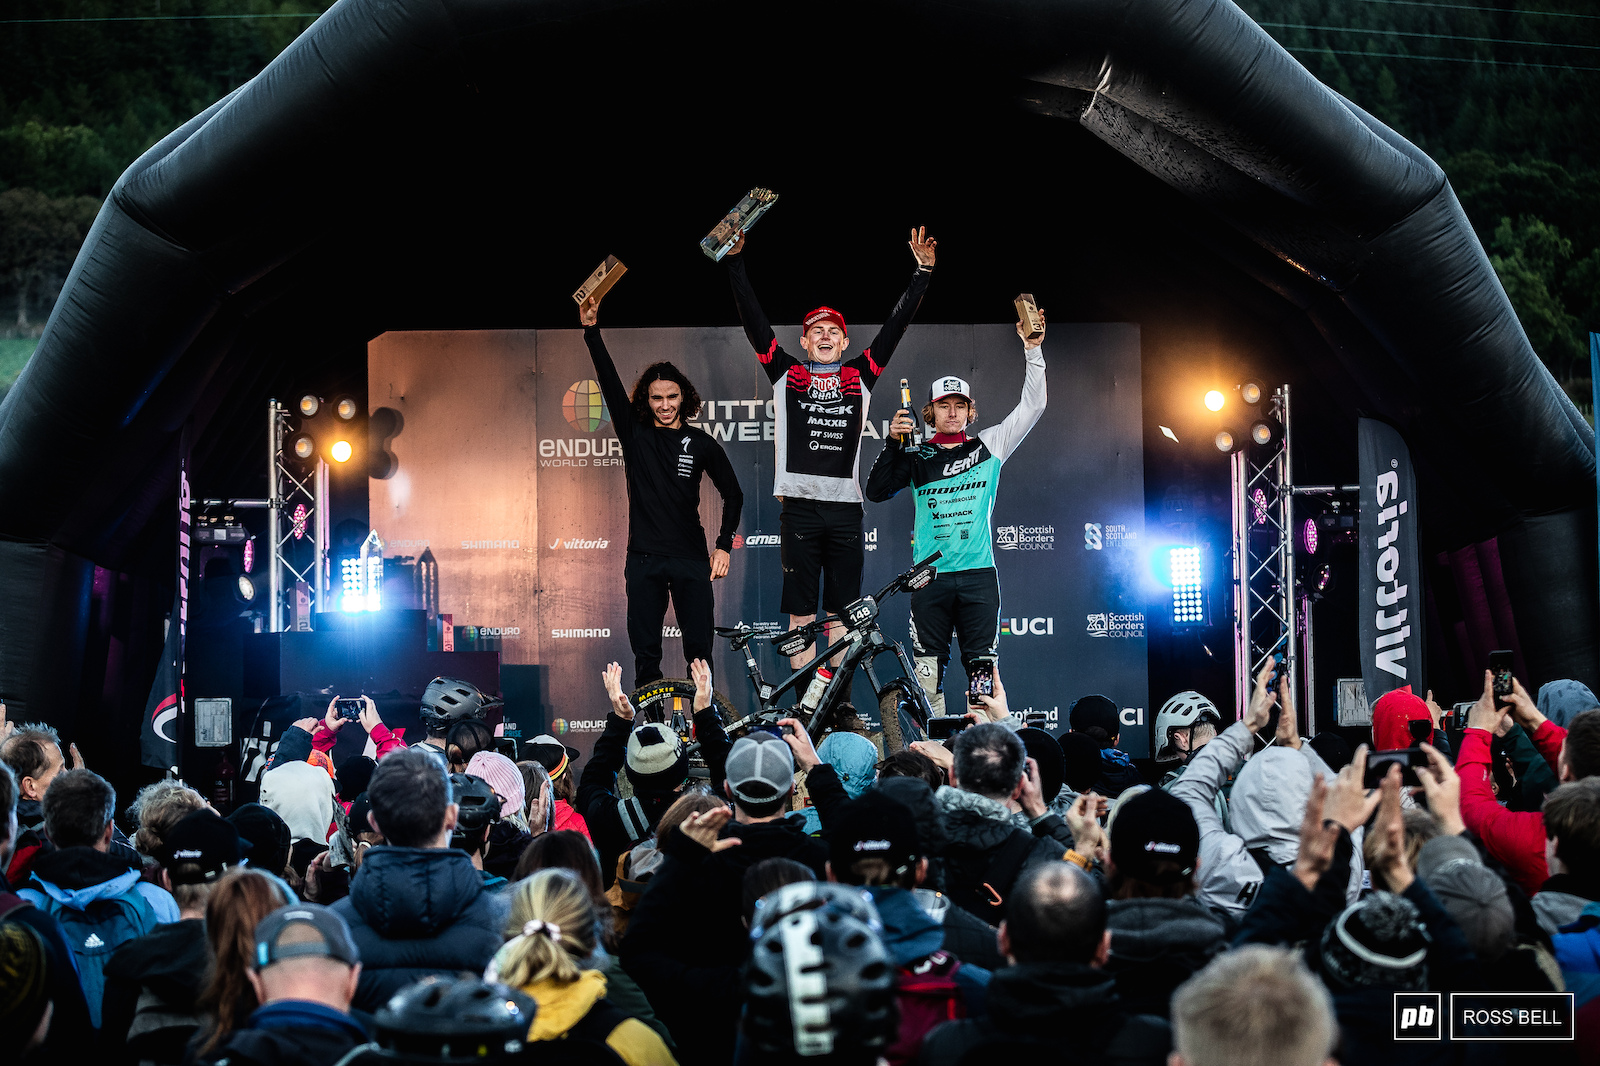 Jamie Edmondson won in style taking the overall as well. Francescu Camoin and Luke Meier Smith were second and third overall in 2021.